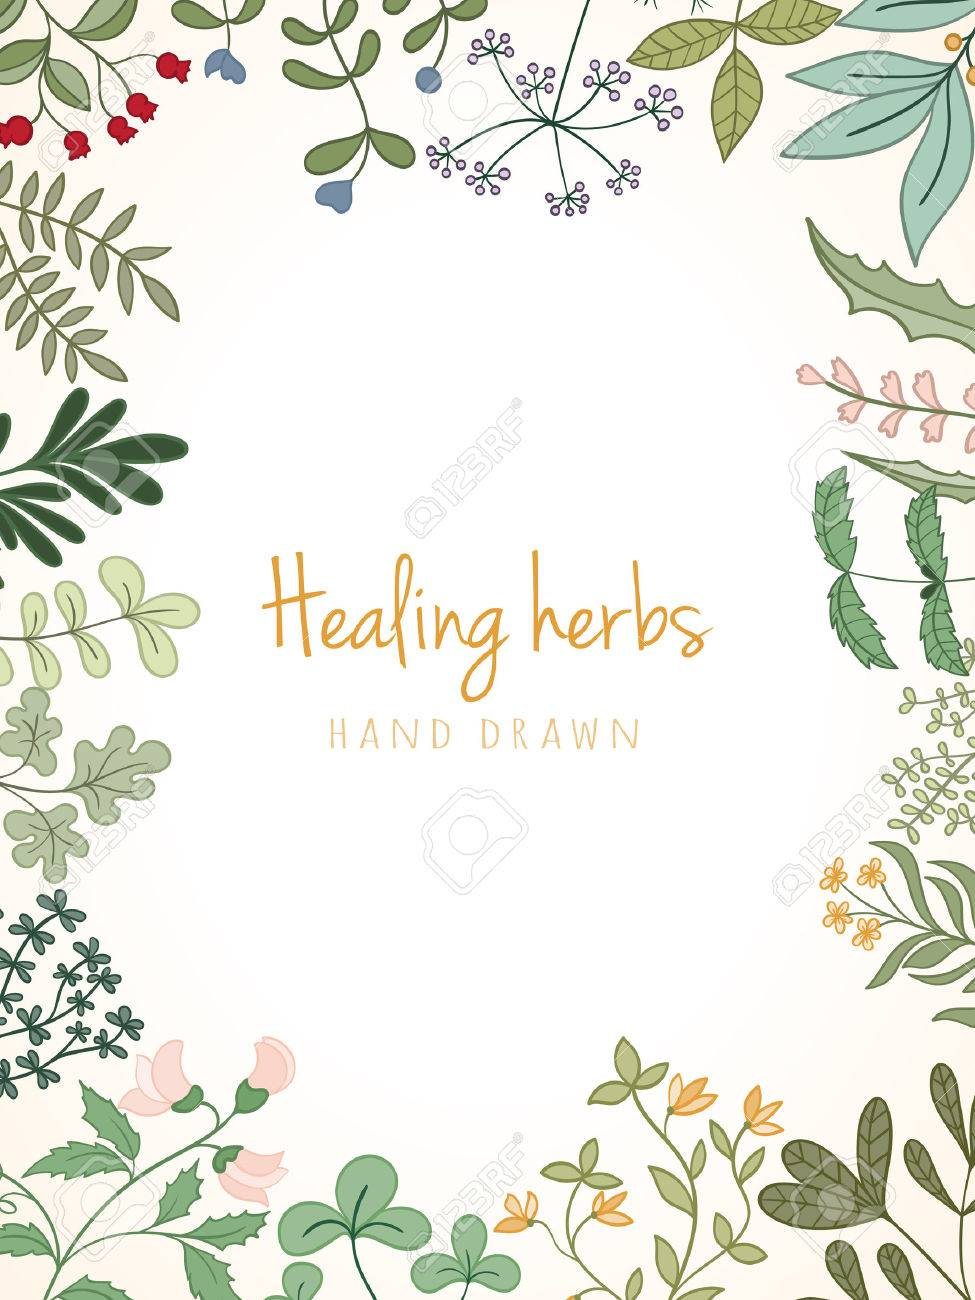 Hand drawn vintage background of medicinal organic healing herbs. Vector medical plants and herbal botanical flowerelements can be used for banner template, card, flyer, banner, sale, website - 67736386